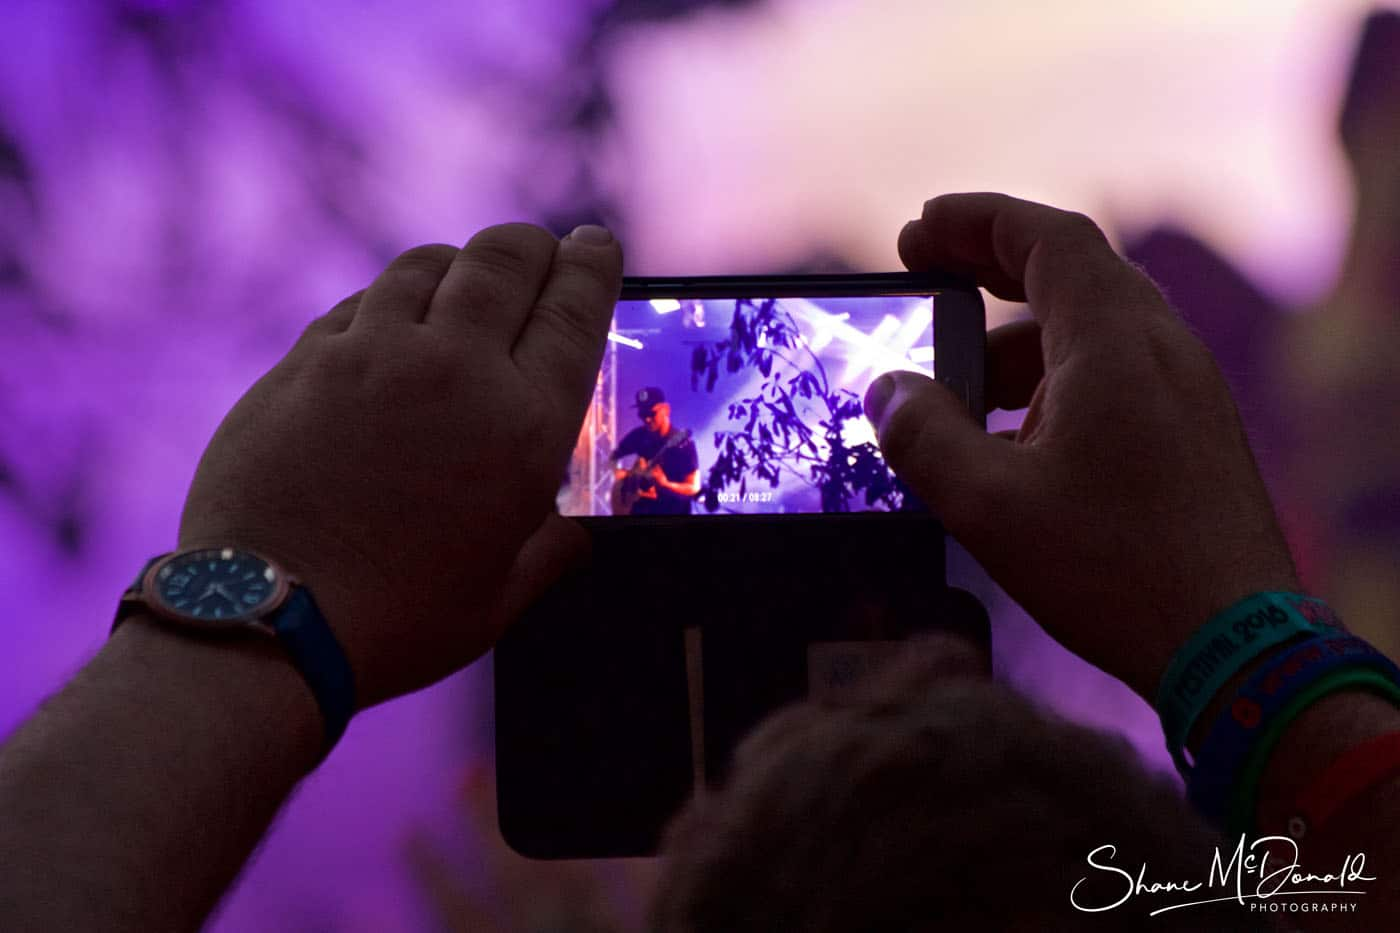 iPhone watching Amazing Guitarist at the Isle of Wight Festival